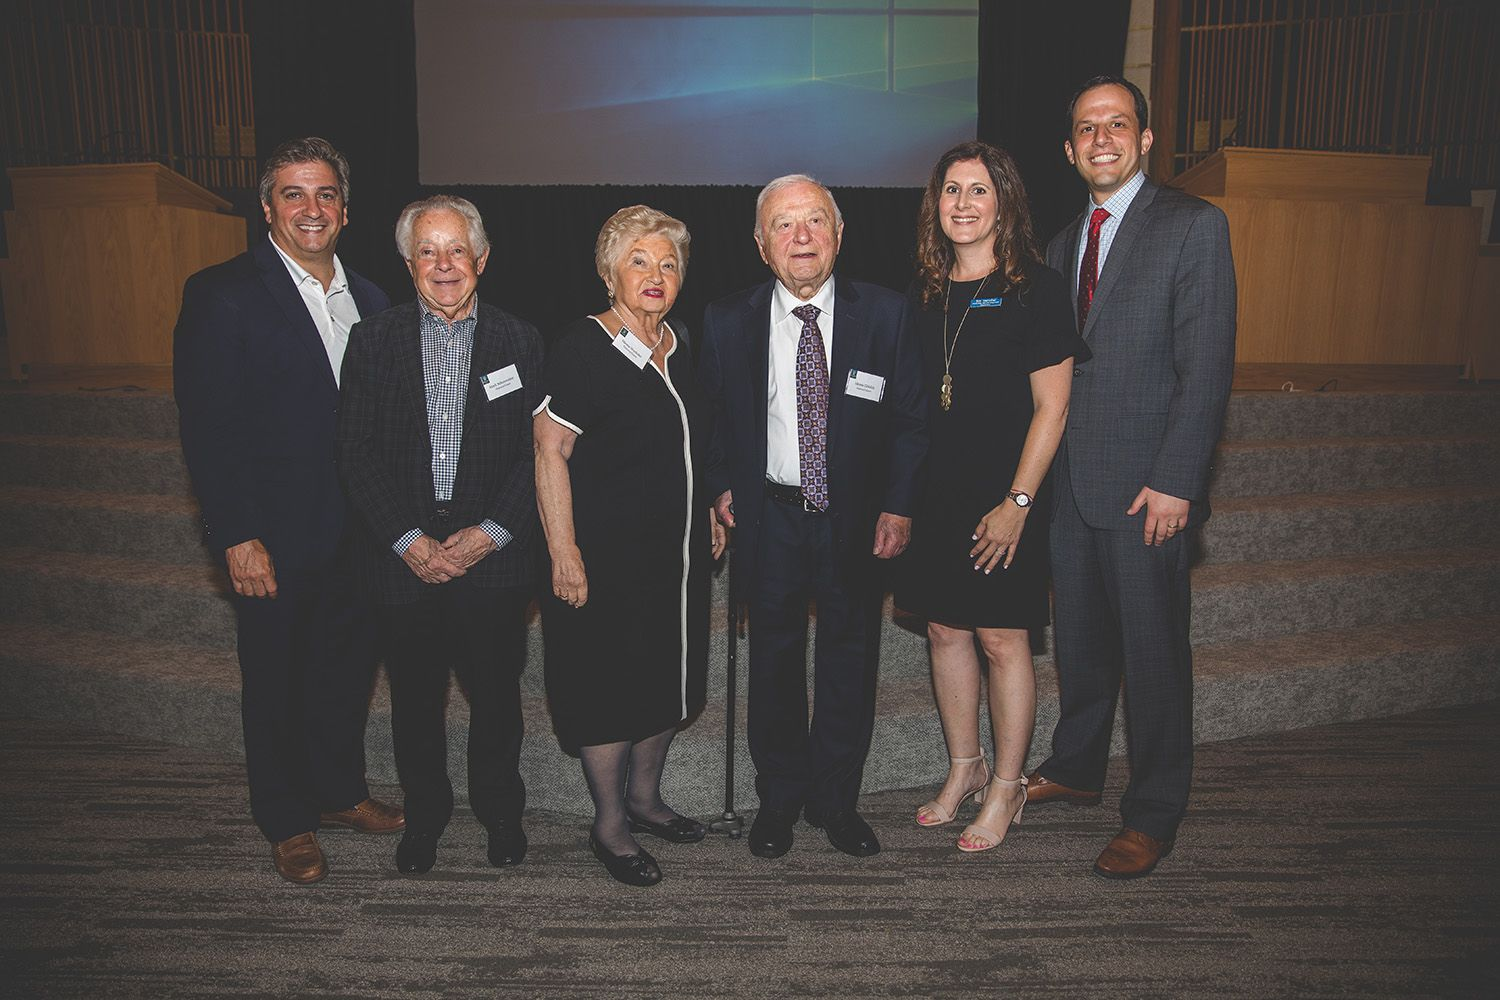 L to R: West Orange Mayor Robert Parisi; Holocaust survivors Mark Schonwetter, Hanna Wechsler and Morris Gliklich; Names, Not Numbers Coordinator Erin Sternthal and Head of School Adam Shapiro